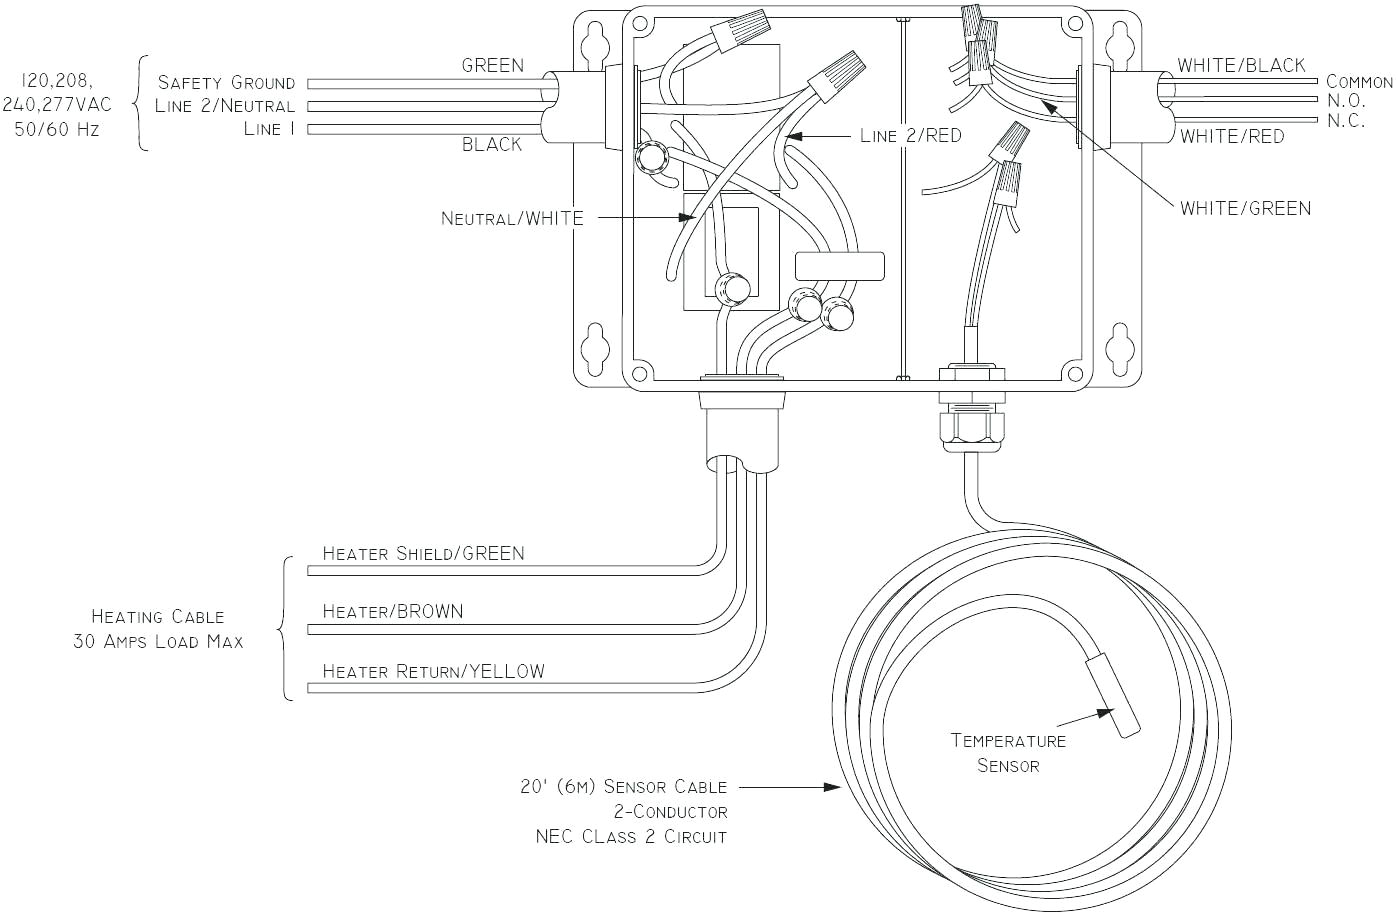 marley electric heater wiring diagram wiring diagram hostmarley wall heater wiring diagram wiring diagram preview marley